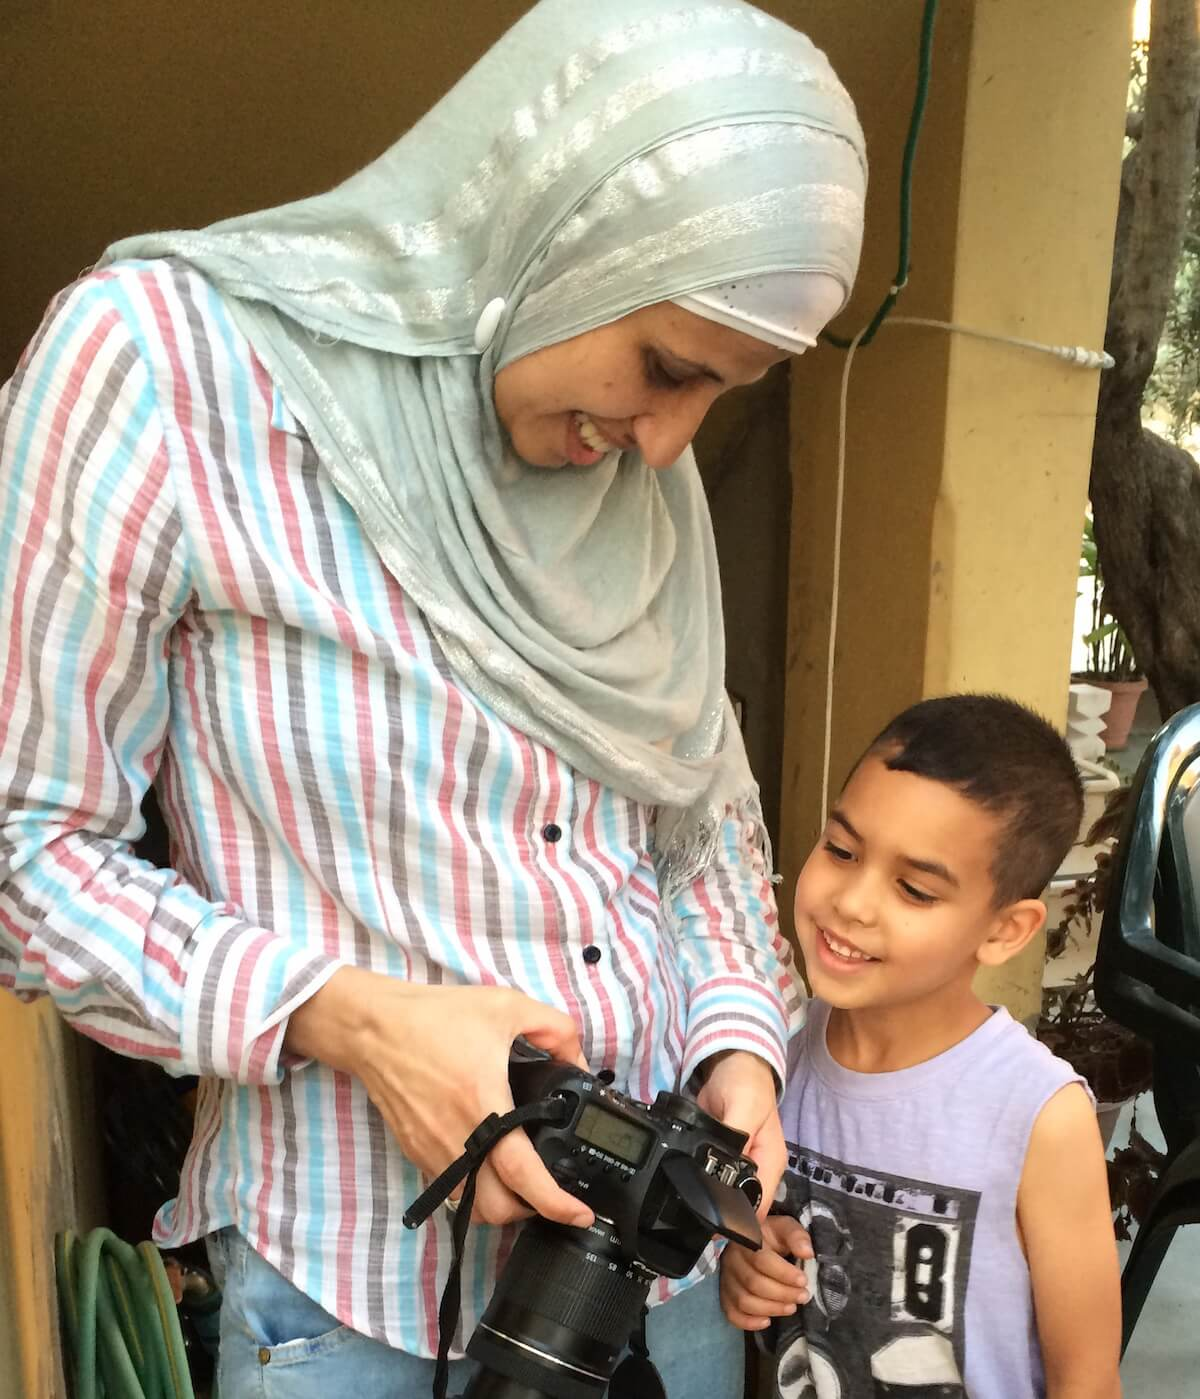 areen Tatour and her nephew looking at the photos she has just taken of him and his sister. (Photo: Kim Jensen)